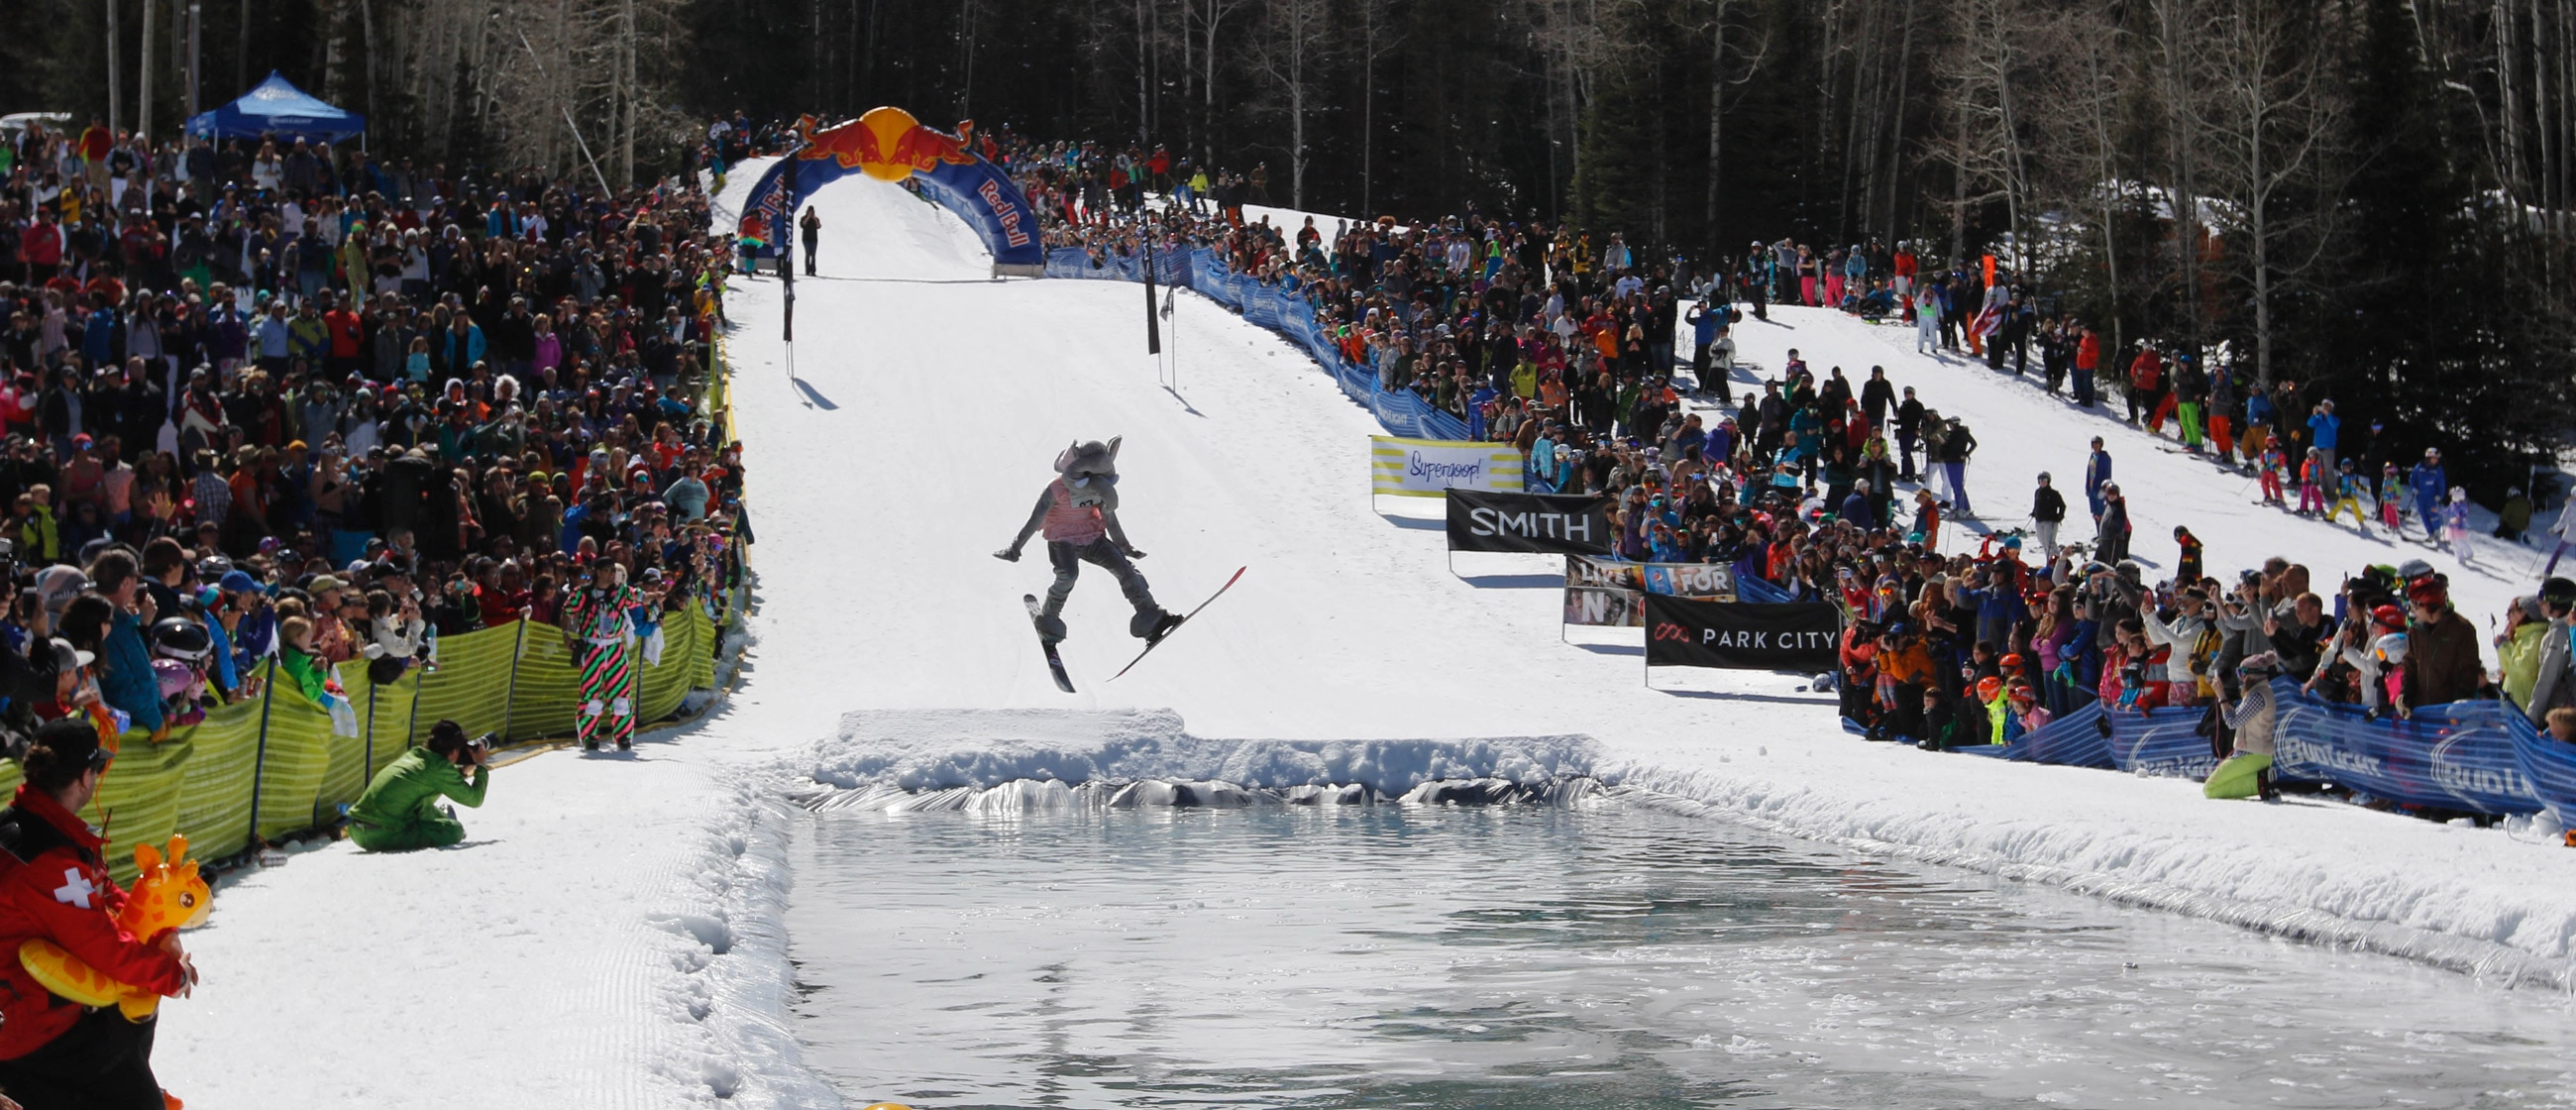 How to Win at Pond Skimming